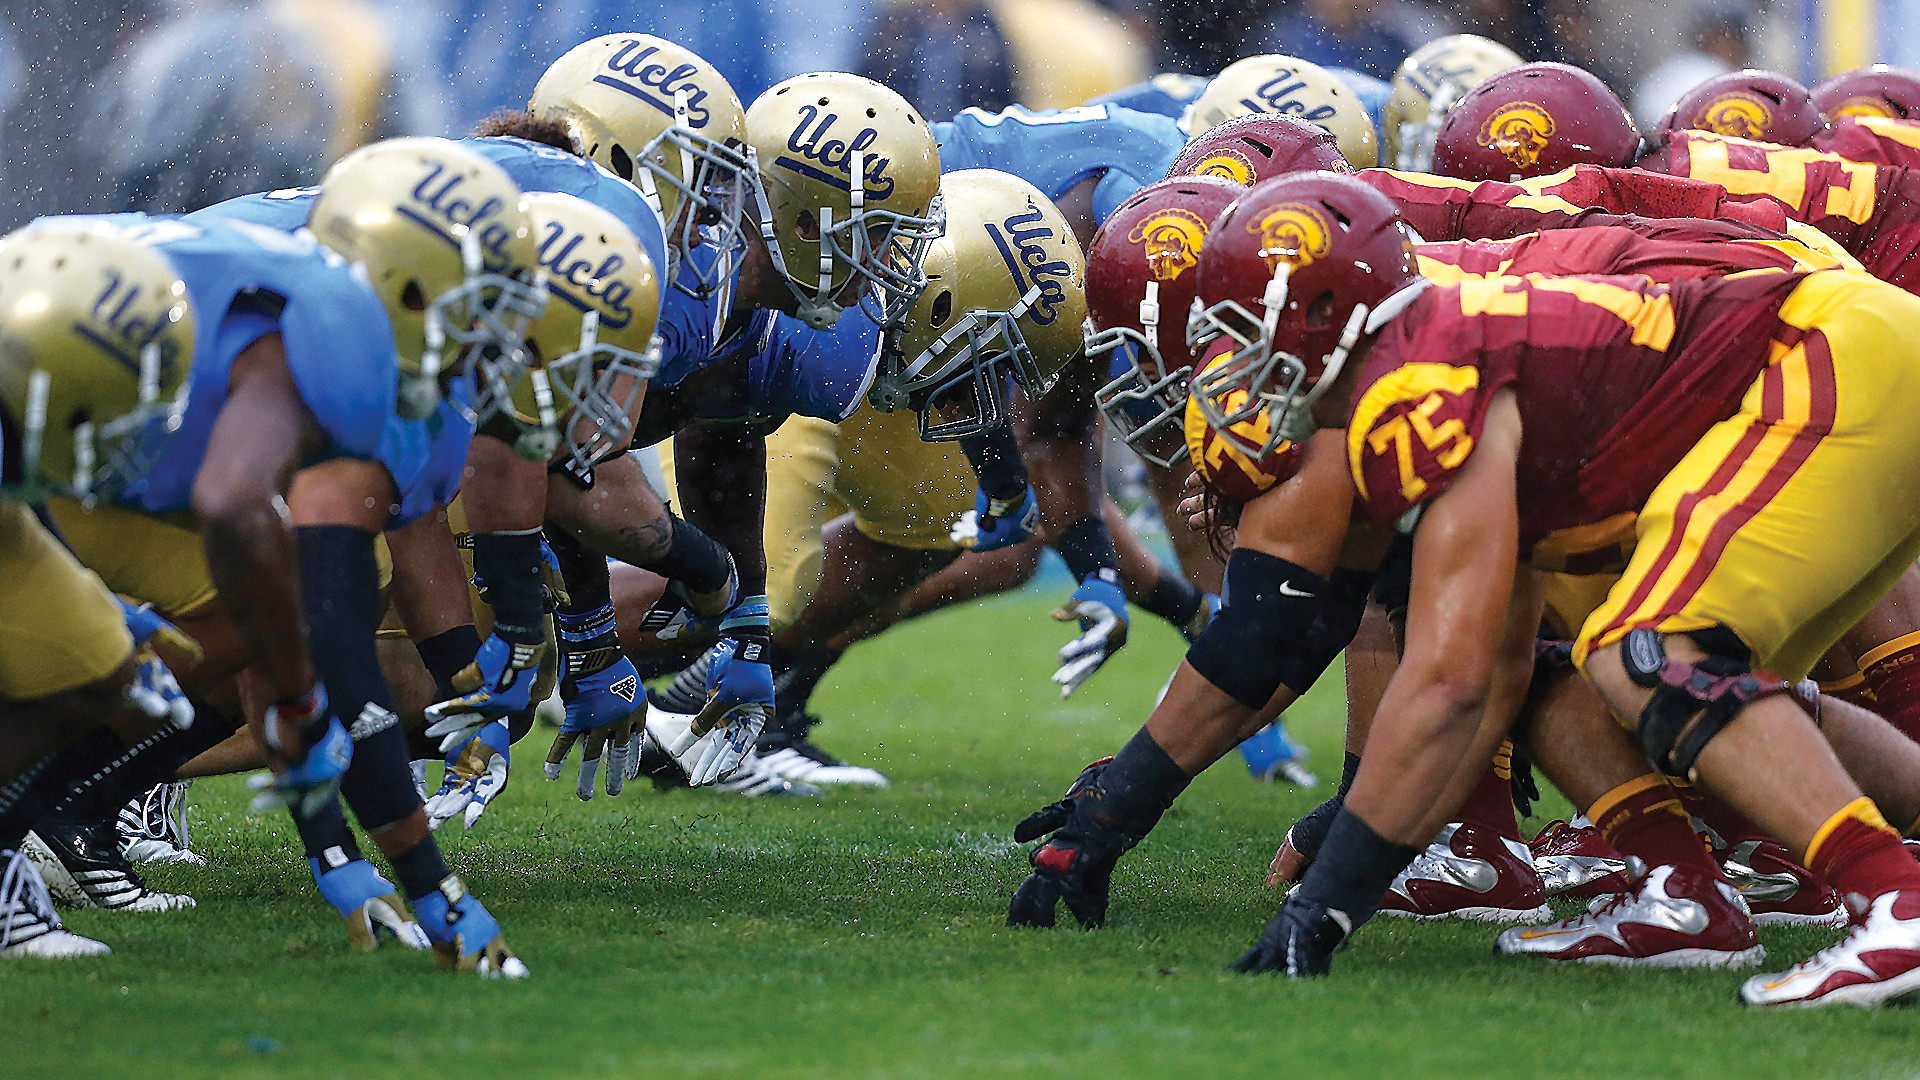 With a well-known rivalry that spans across Los Angeles and even further  beyond, the classic USC vs. UCLA football has fans crowding the bleachers  game …